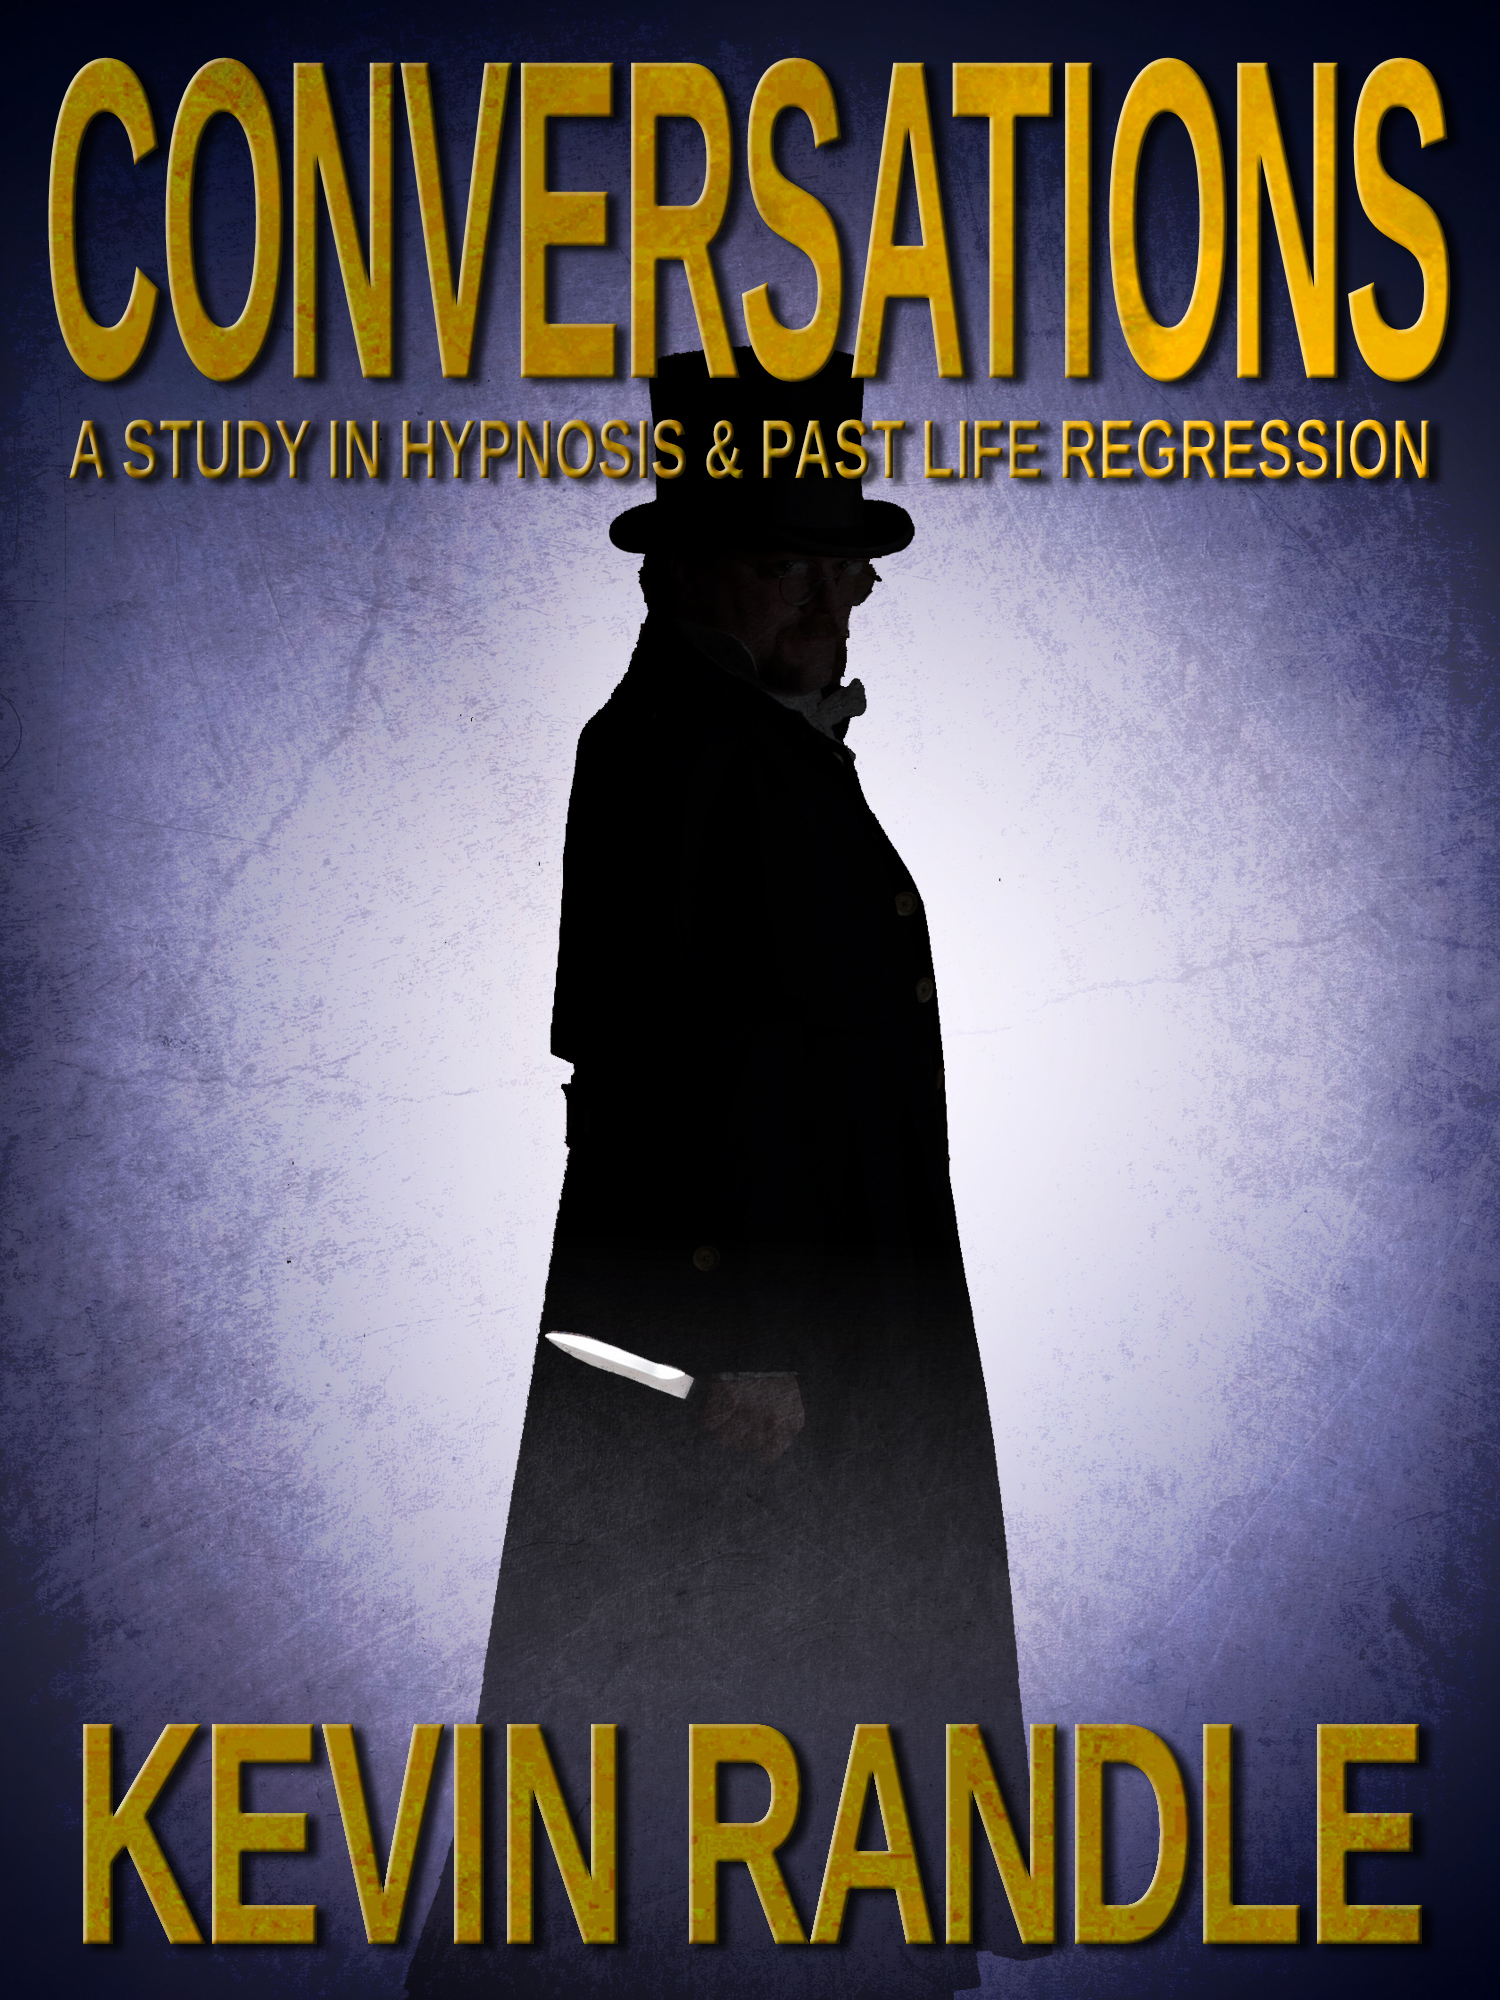 Conversations: A Study in Hypnosis & Past Life Regression